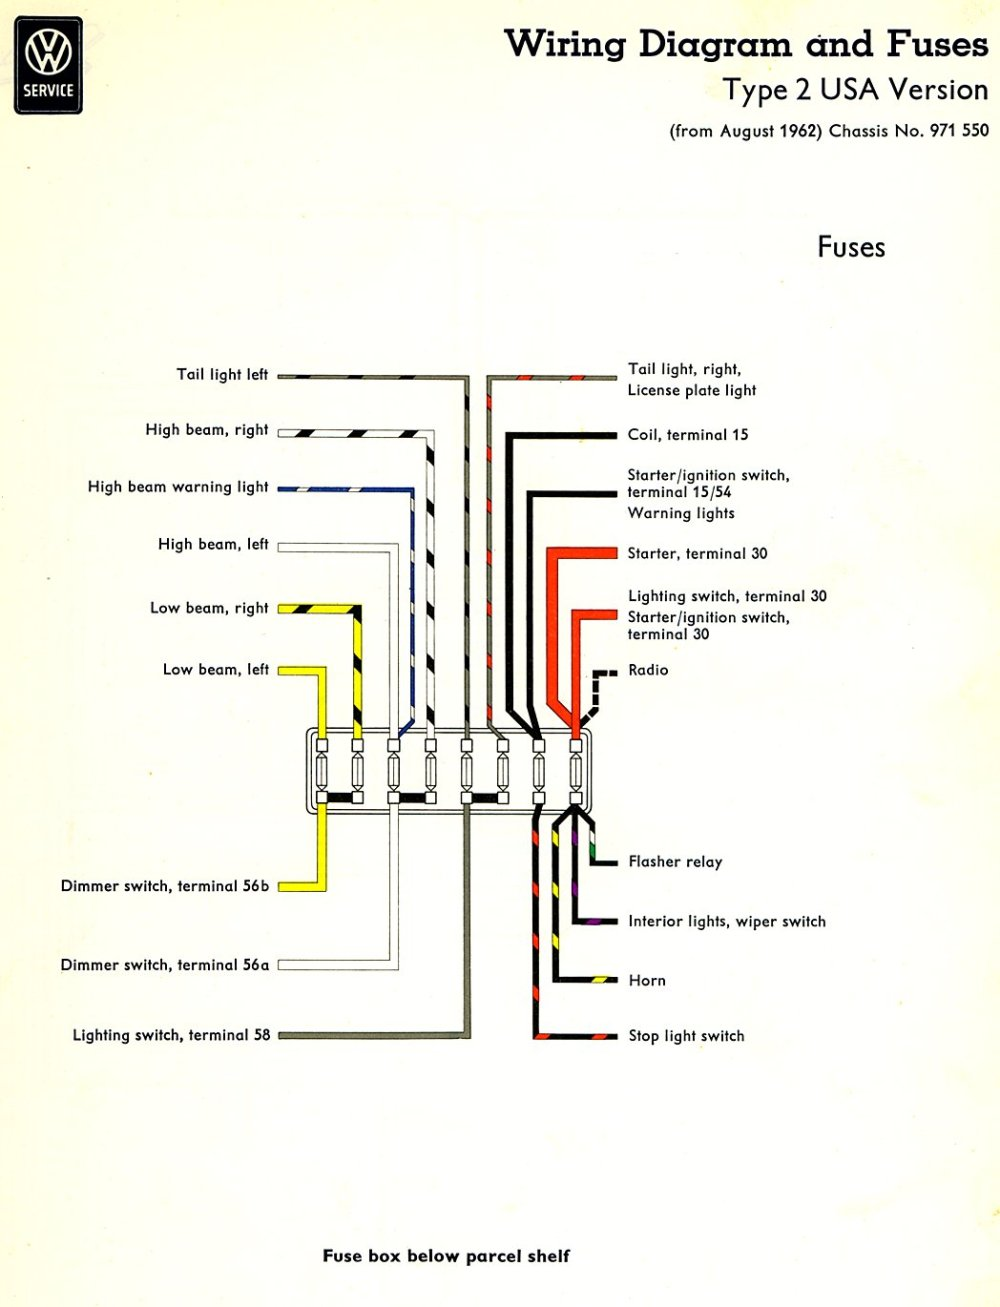 medium resolution of thesamba com type 2 wiring diagrams64 corvette tail light wiring diagram 14